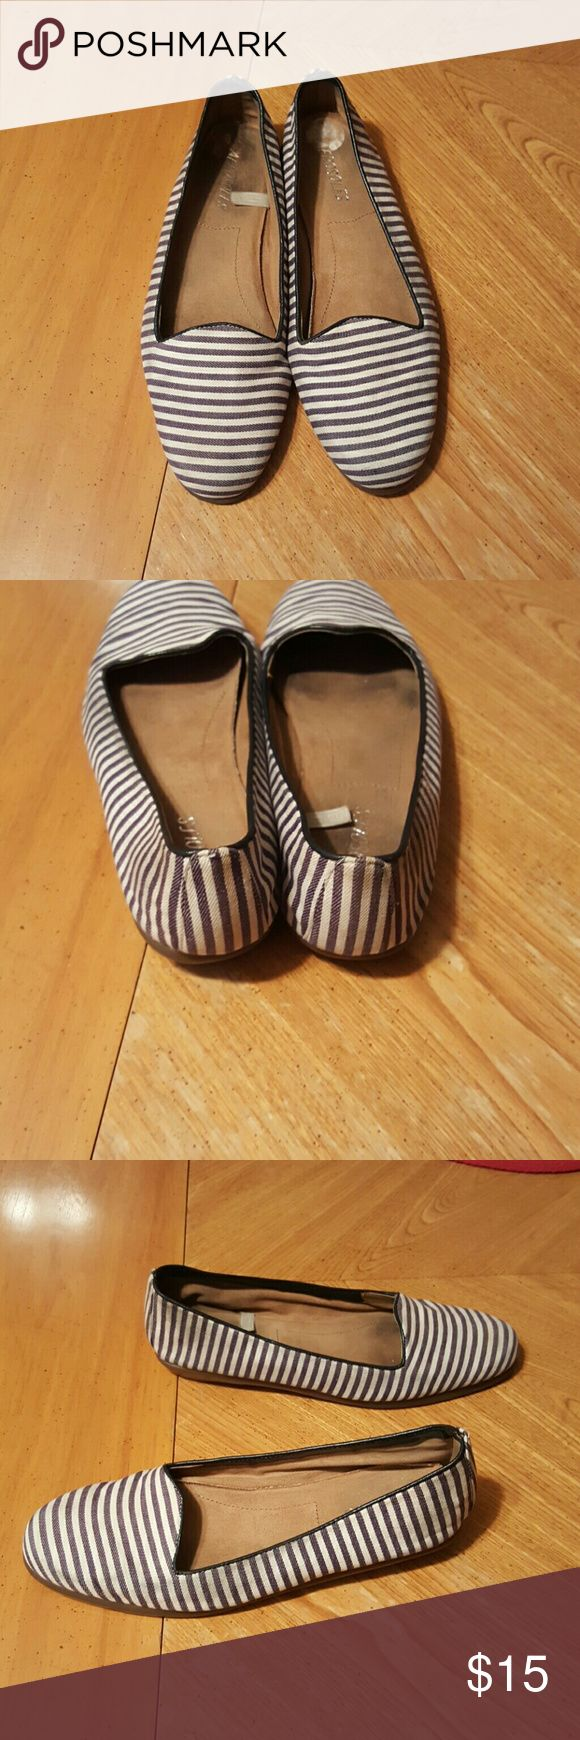 Blue and white flats Very comfortable blue and white flats. In good condition. AEROSOLES Shoes Flats & Loafers